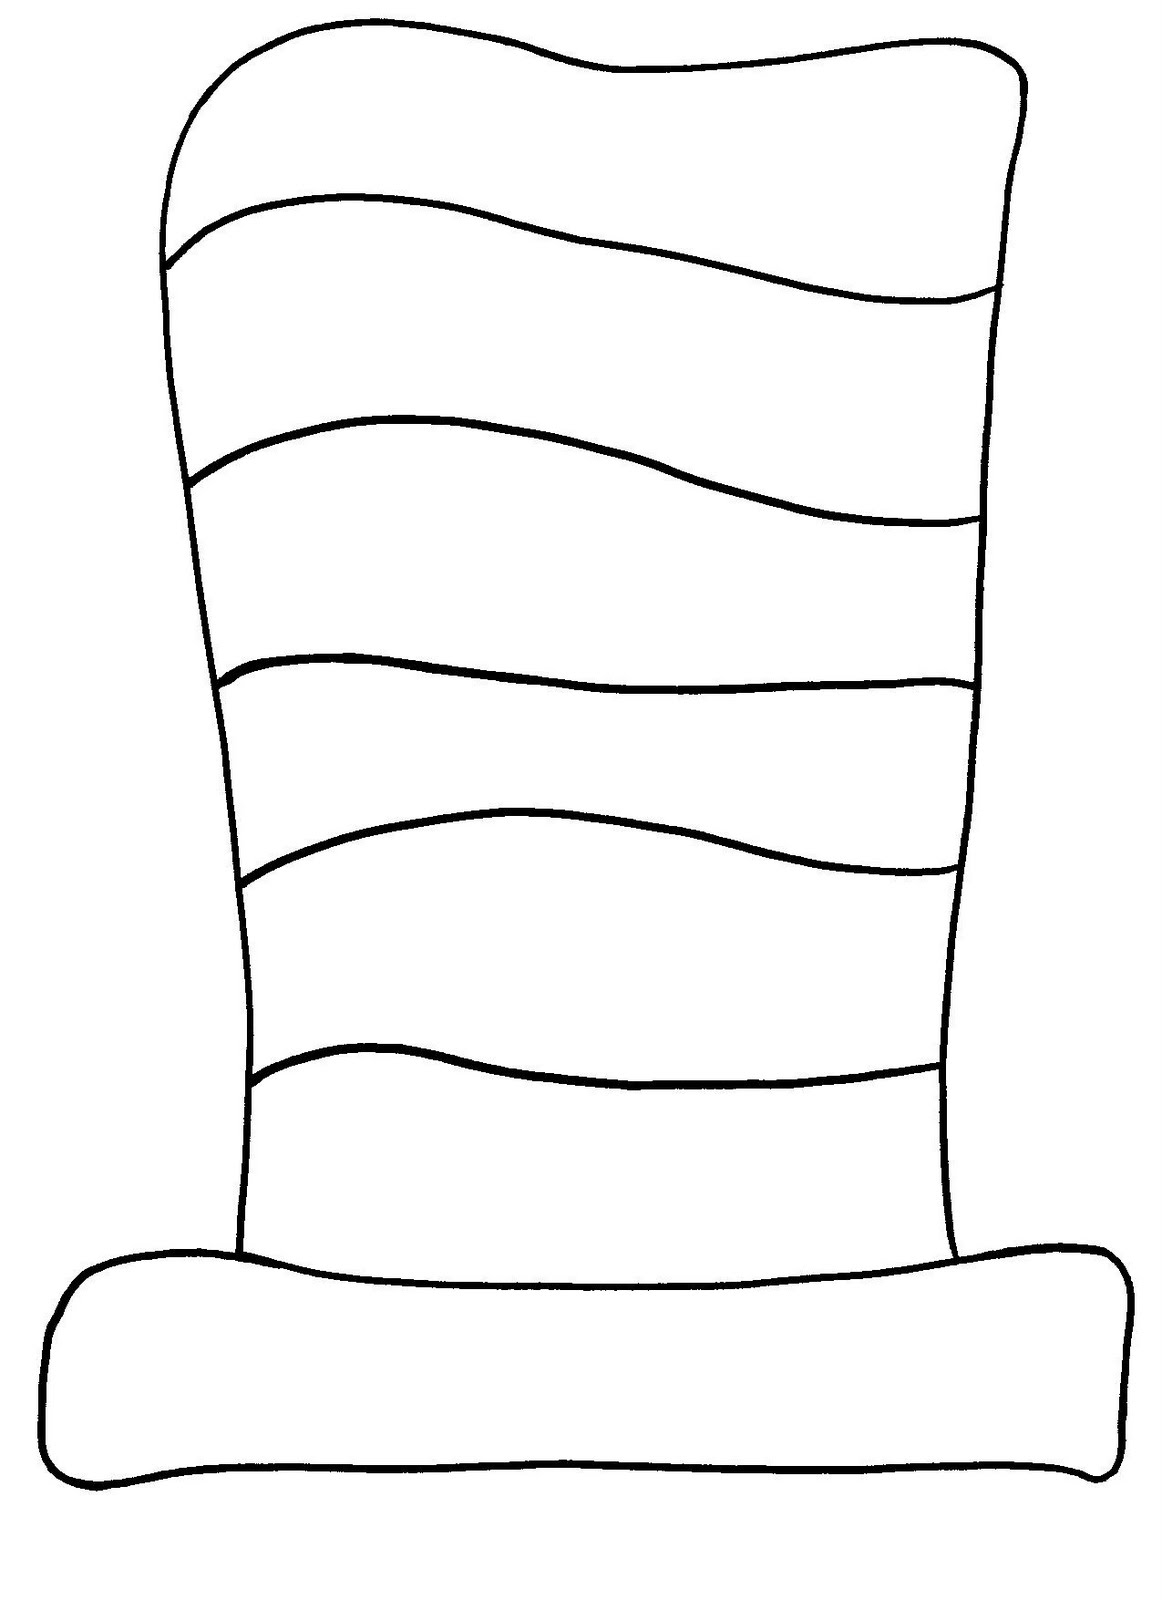 Dr seuss hat black and white clipart png download Photos of free template of dr seuss cat in the hat clipart - Clipartix png download